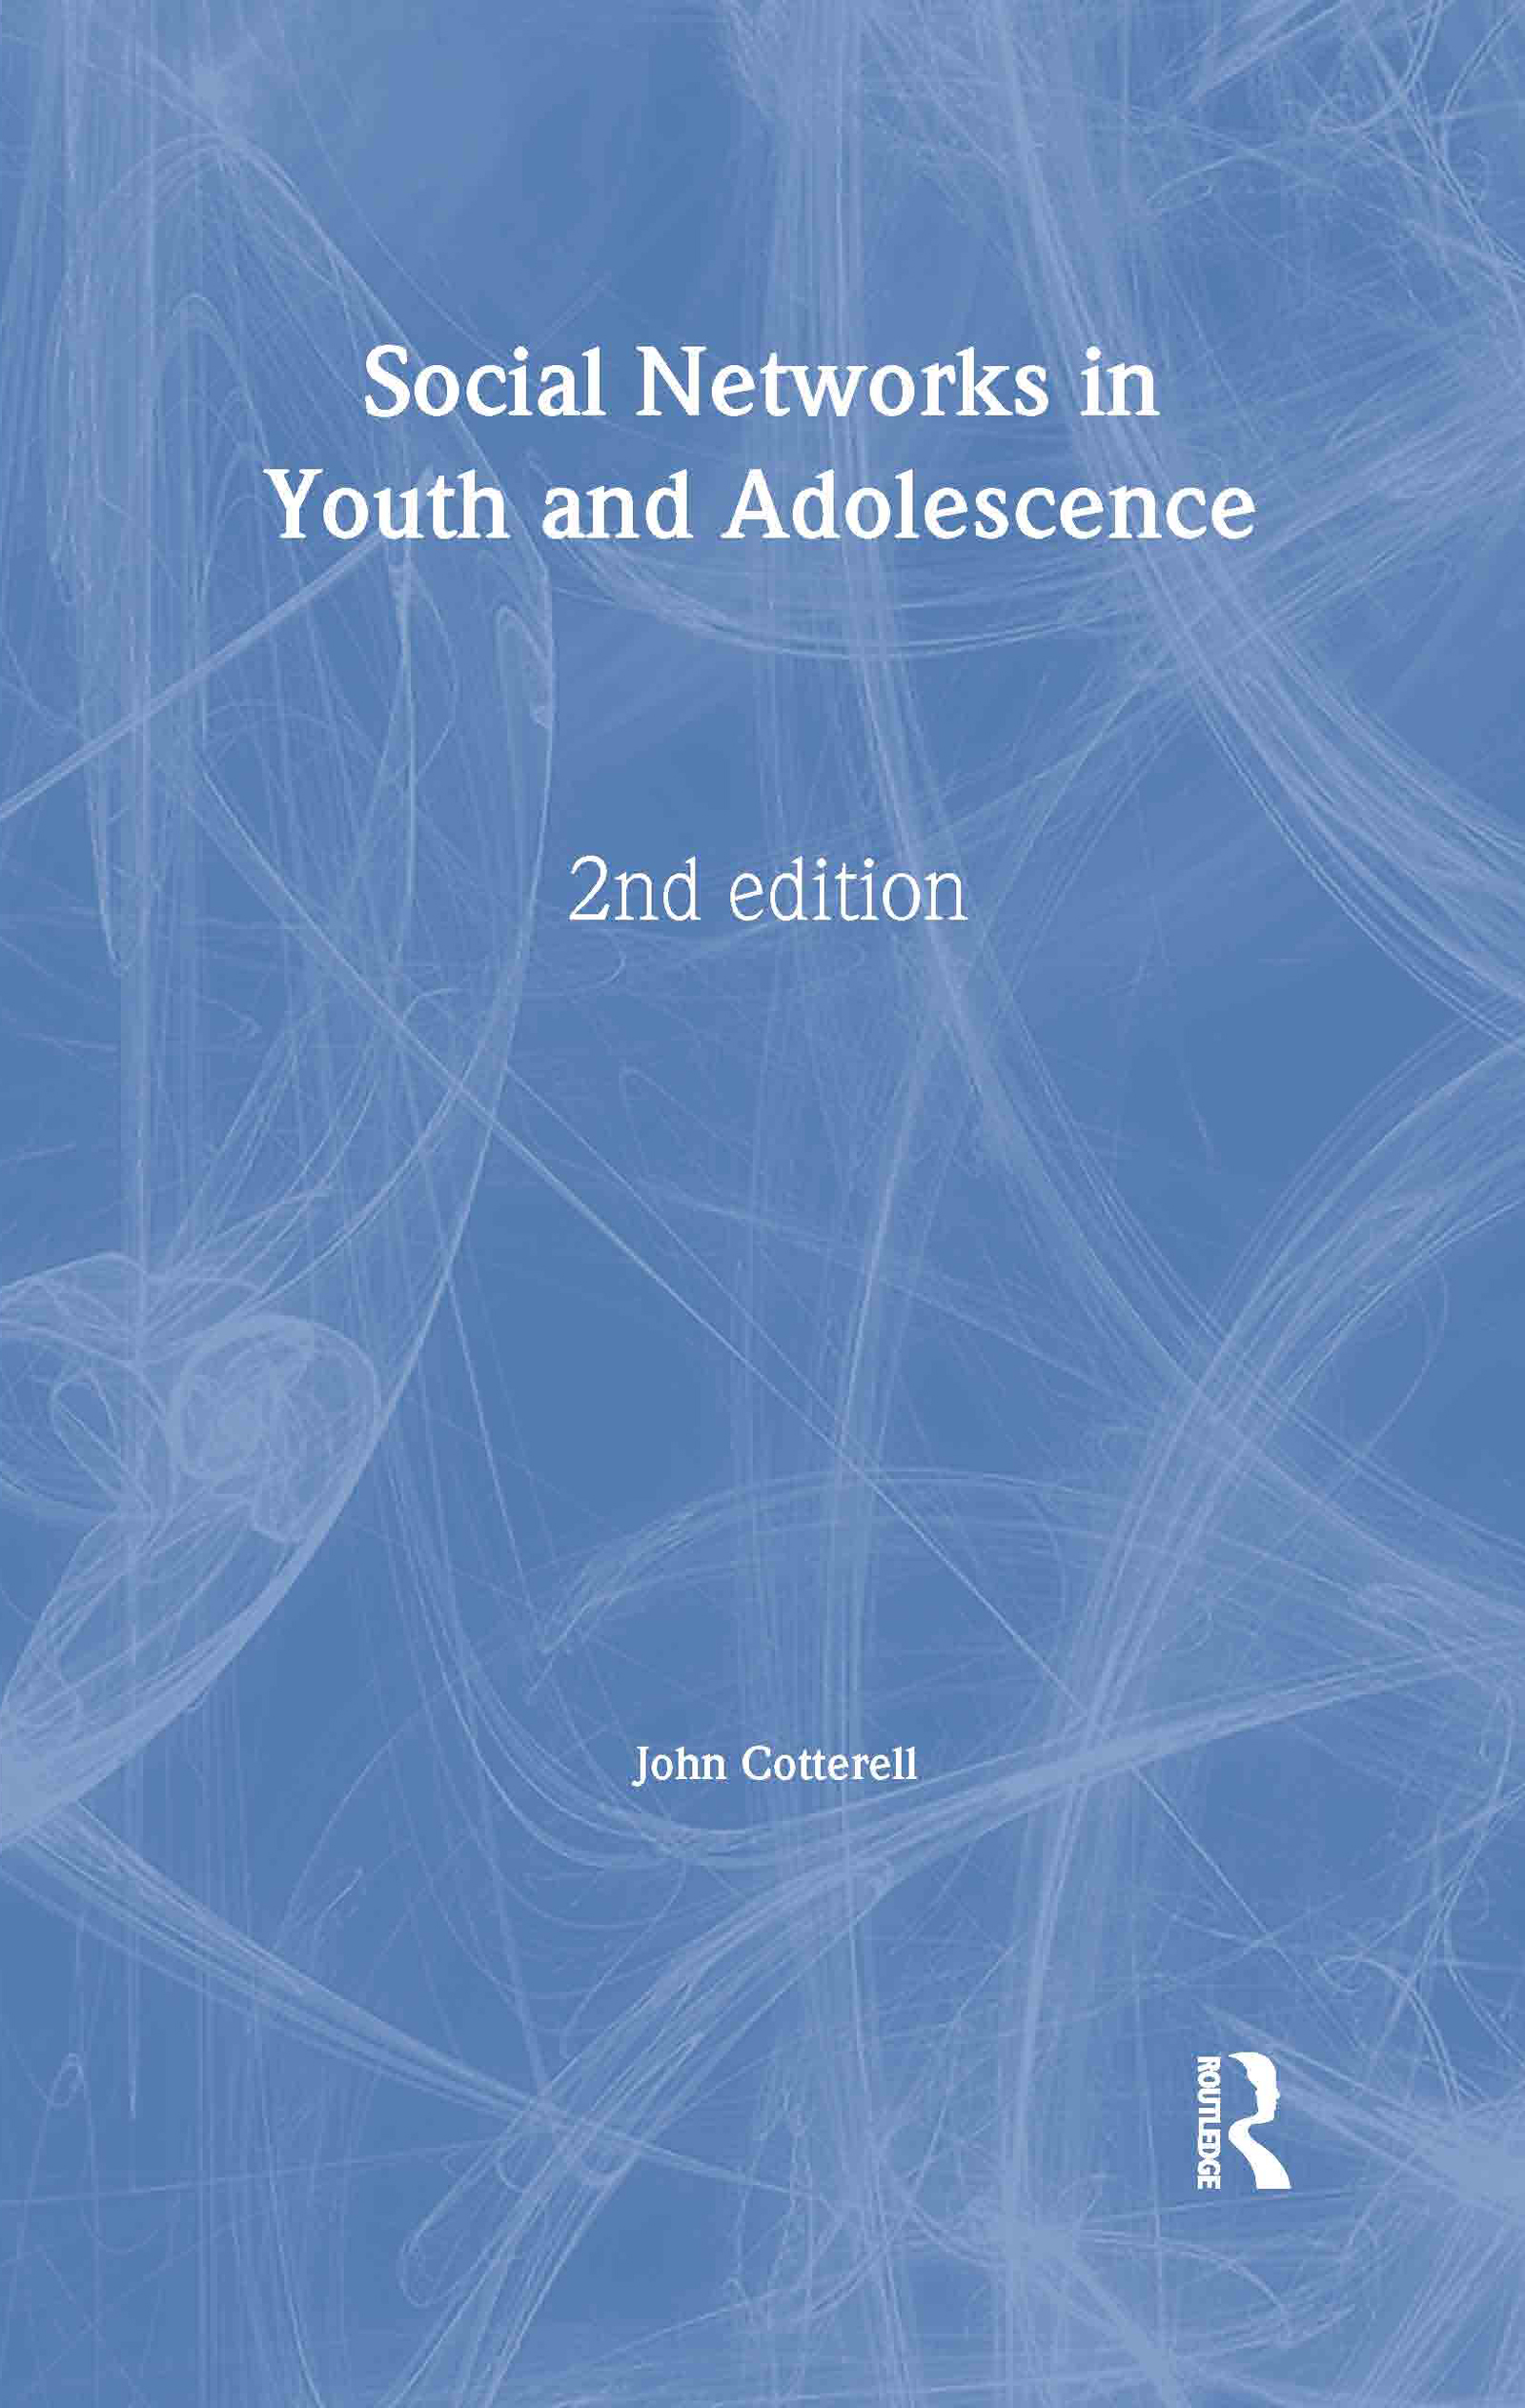 Social Networks in Youth and Adolescence book cover